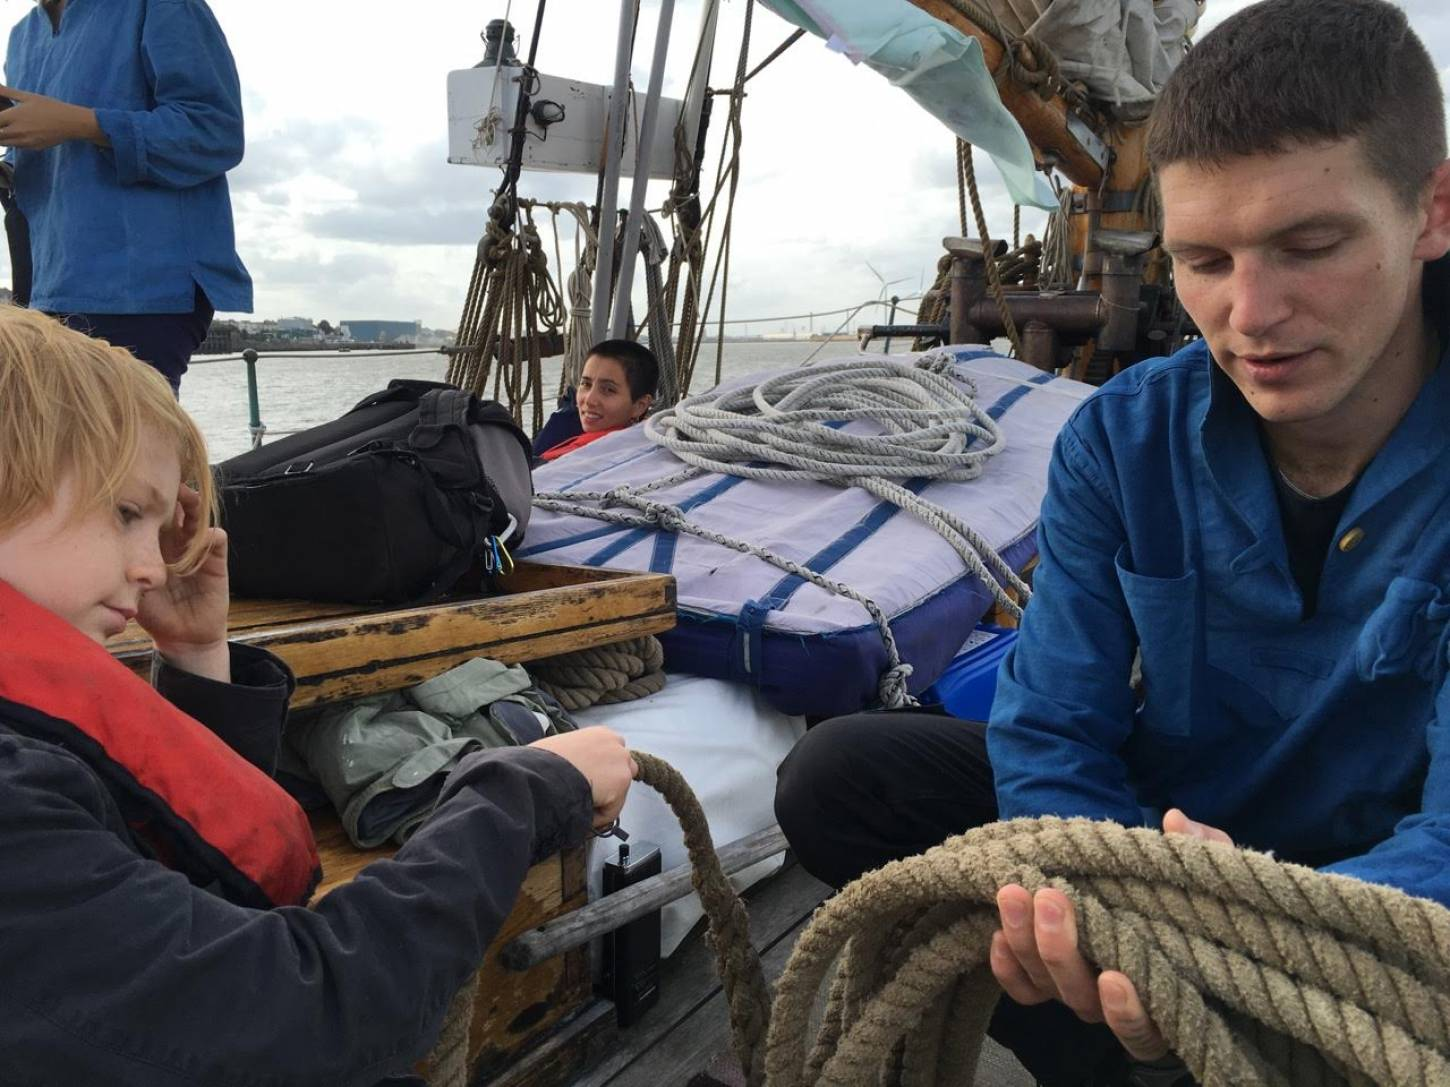 on Gravesend to Port of London leg of <a href='http://https://www.facebook.com/theseedjourney/' target='_blank'>Seed Journey</a> adventure aboard the <a href='http://www.classicboat.co.uk/articles/christiana-from-shipwreck-to-sailing/' target='_blank'>RS10 Christiana</a> 1895 Norwegian Colin Archer rescue boat - making good mooring ropes